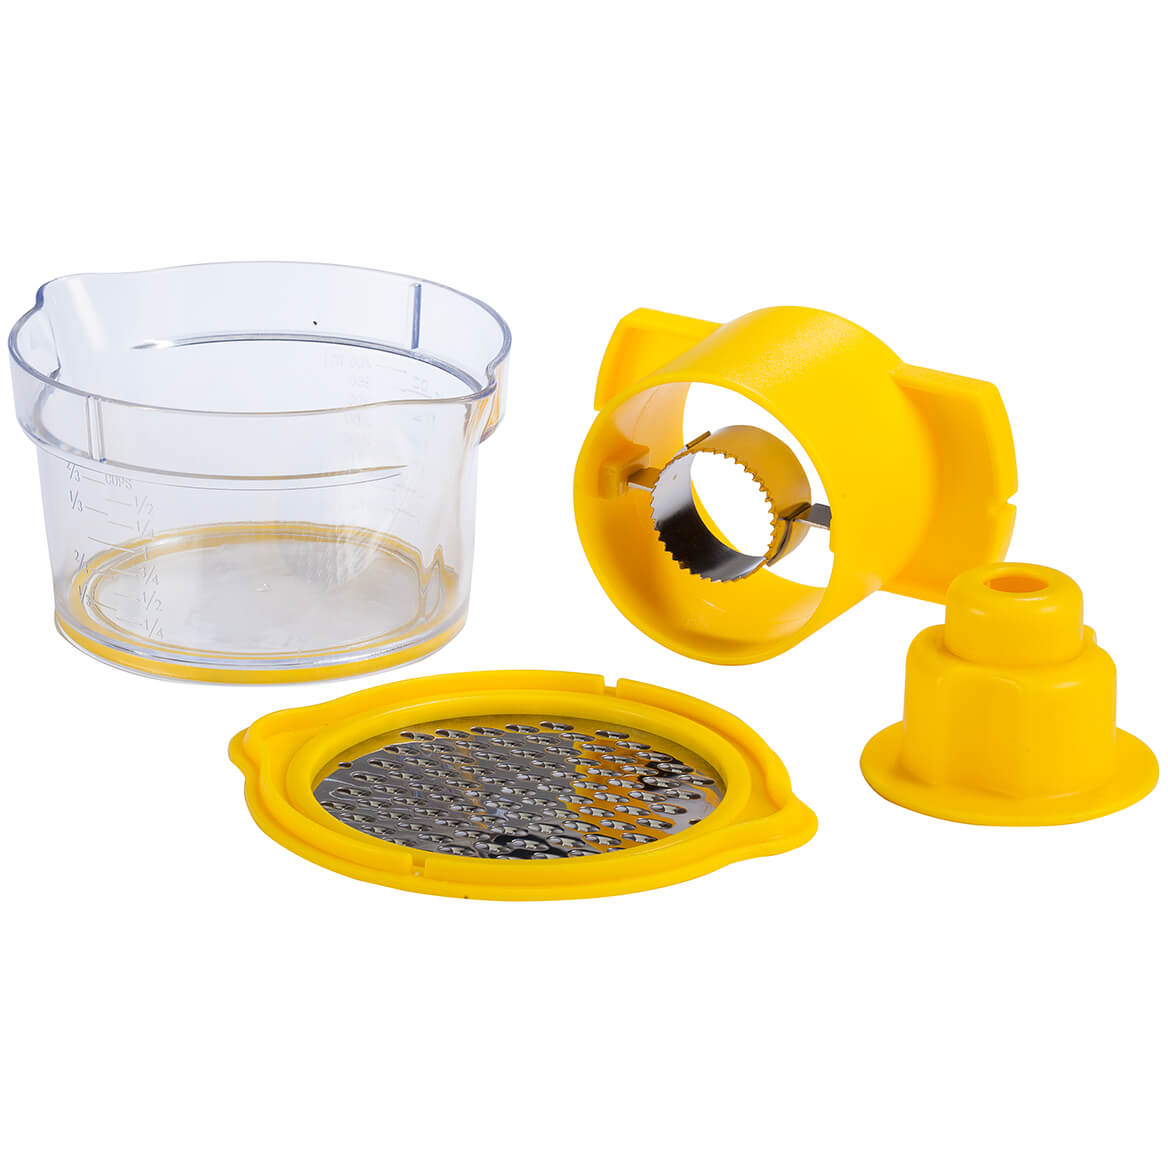 Combination Corn Stripper & Grater by Homestyle Kitchen-367336